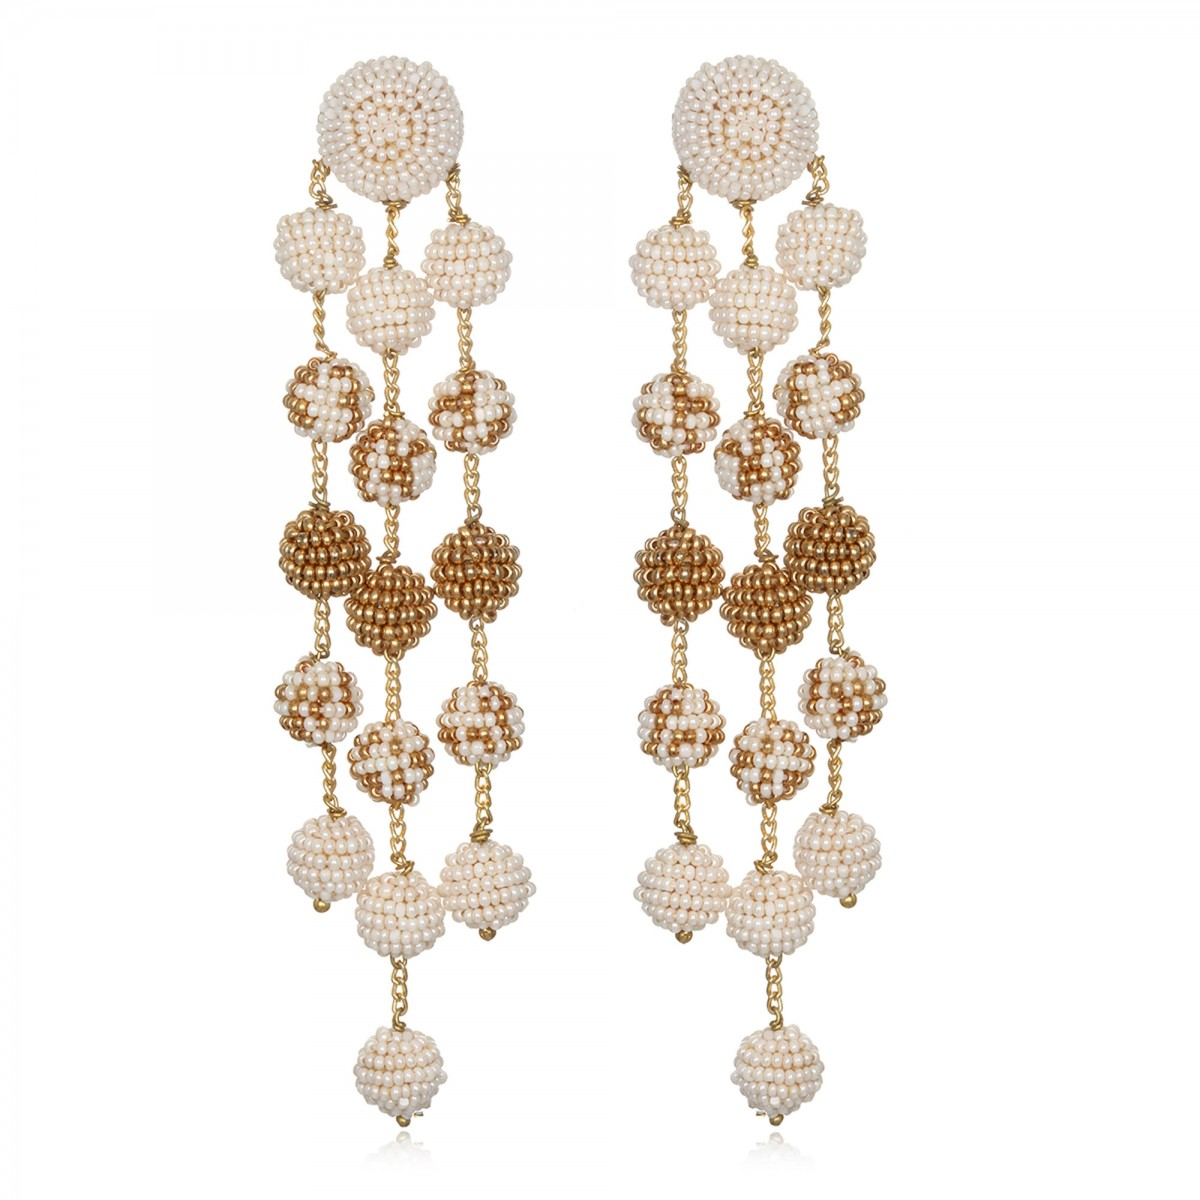 Ivory Ombre Beaded Earrings by SUZANNA DAI